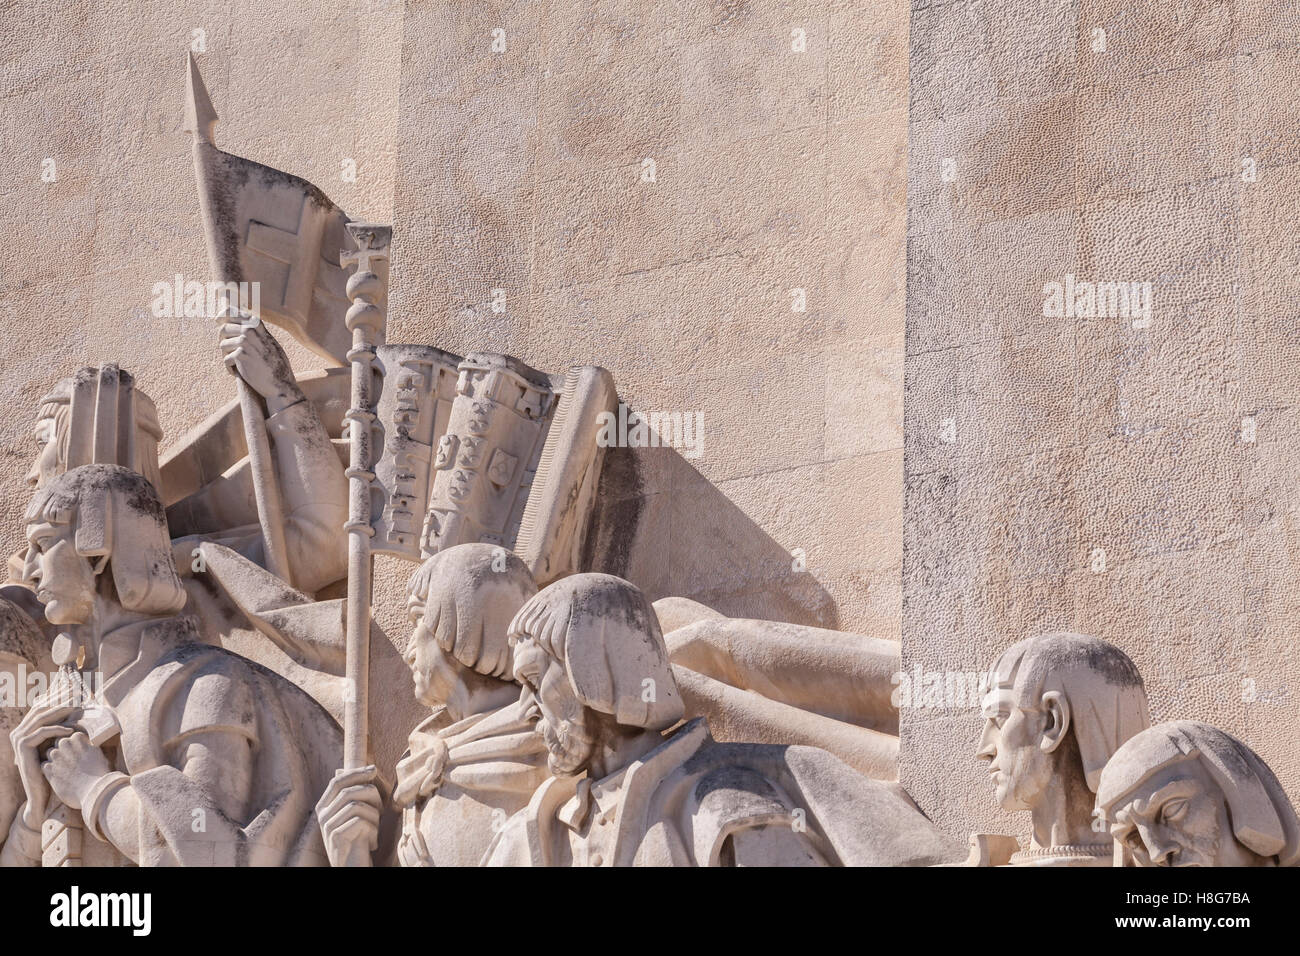 The Padrao dos Descobrimentos (Monument to the Discoveries) in Lisbon, Portugal. - Stock Image